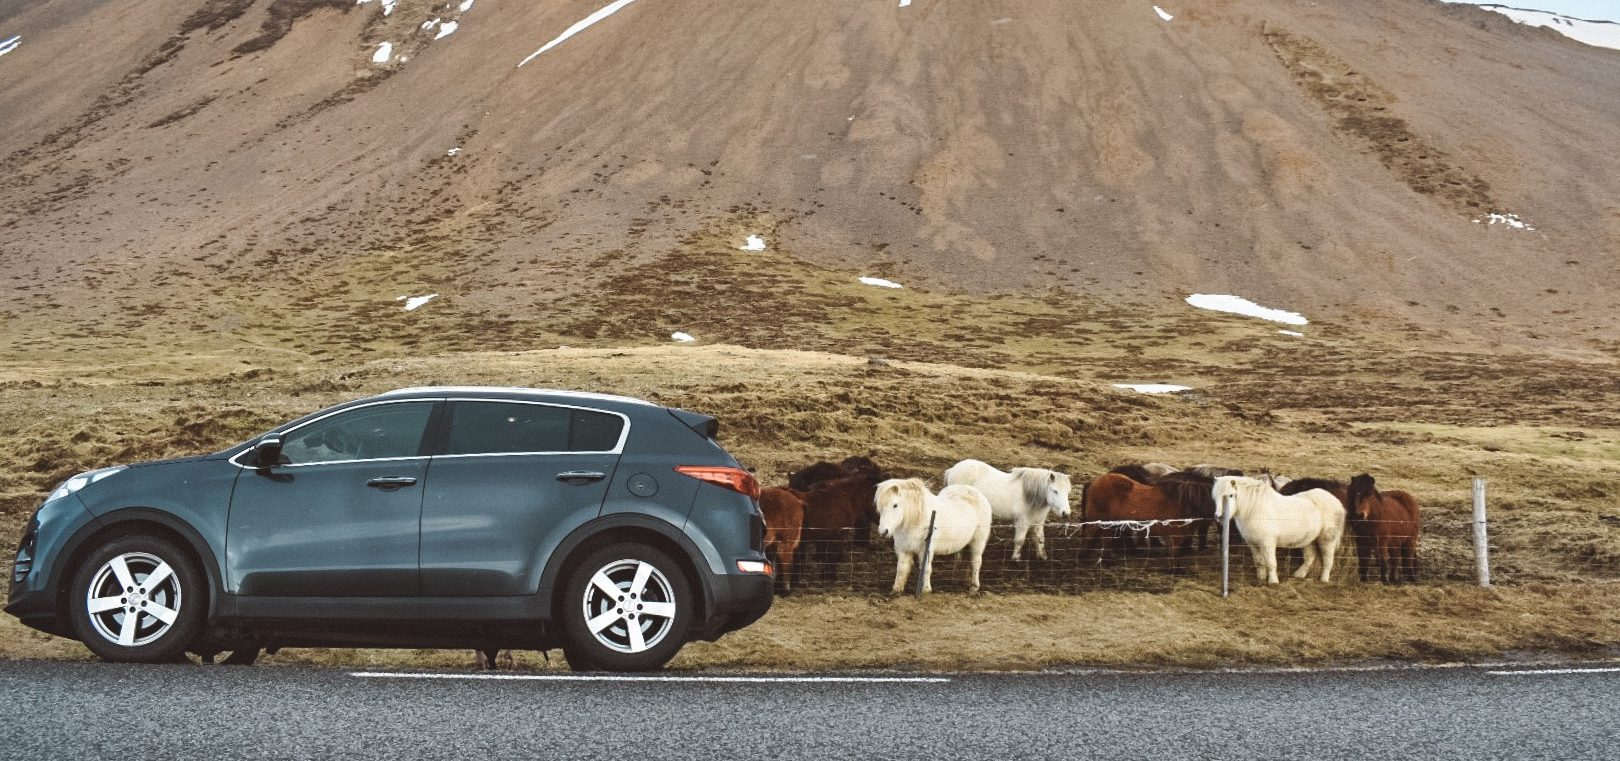 Horses on ring road in Iceland